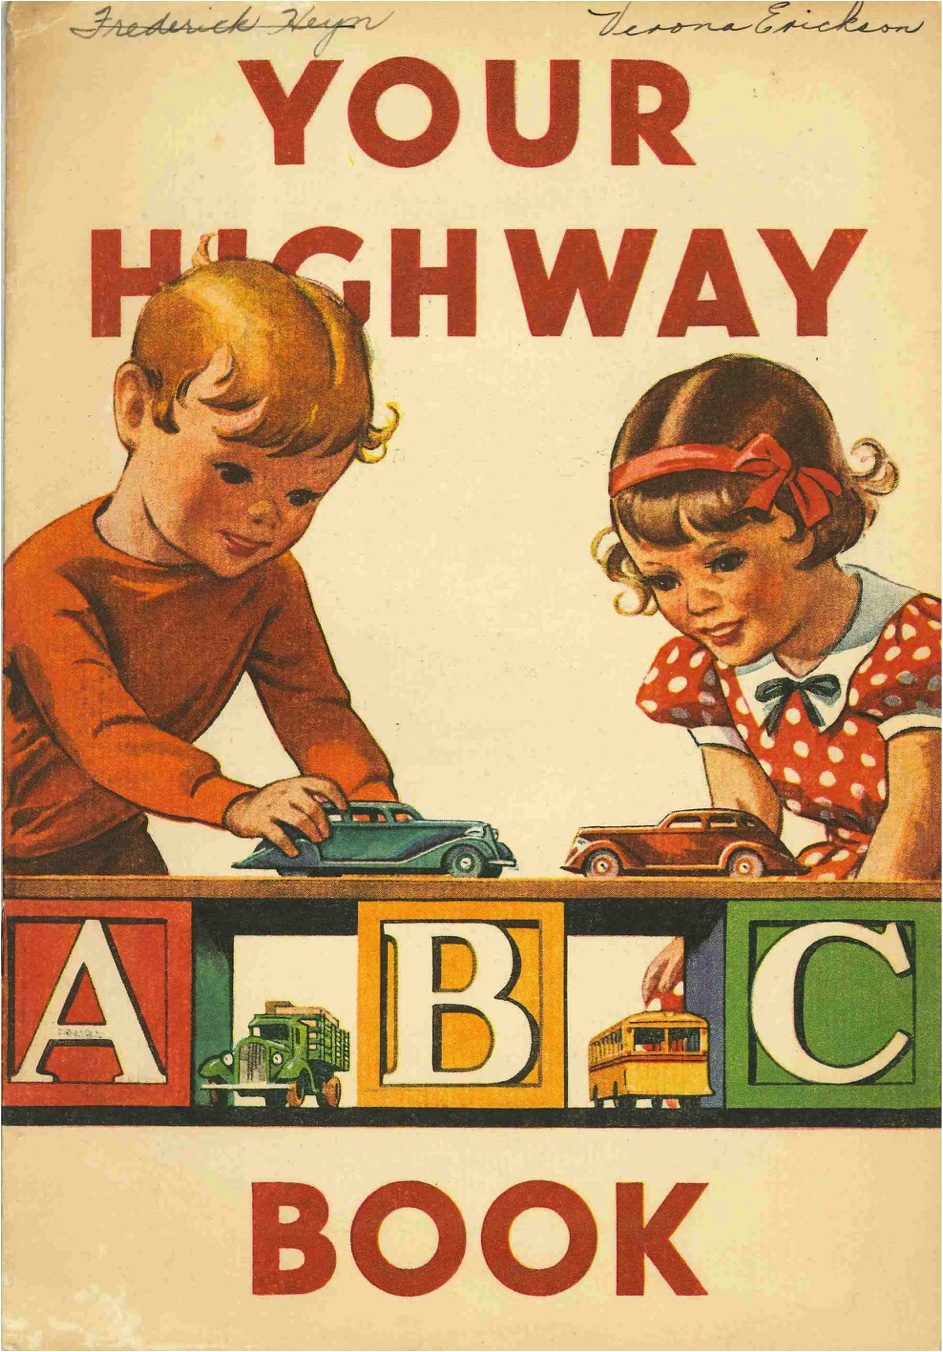 Highway-abcs copy.jpg